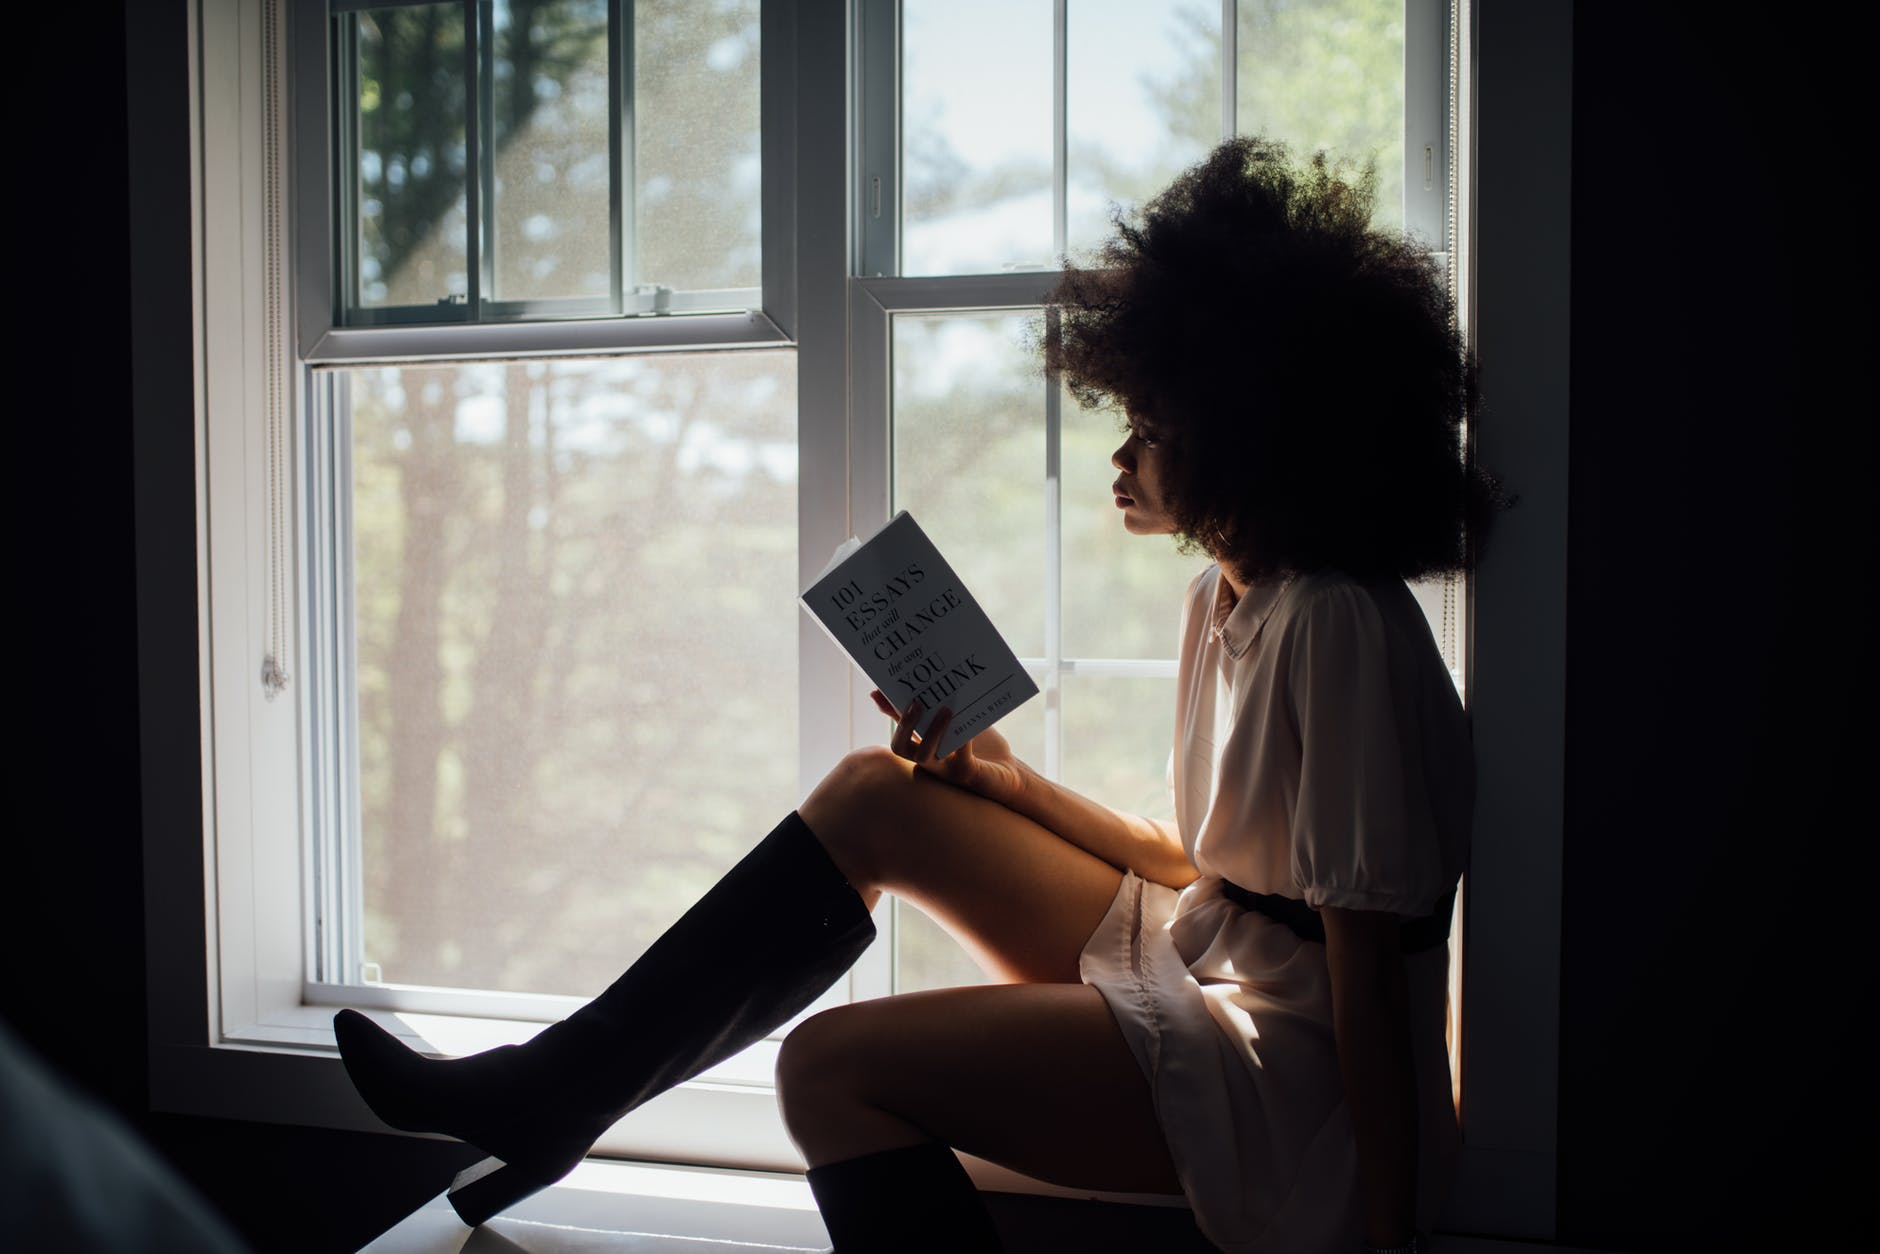 Woman sat on a windowsill reading a book. Her features are obscured by the light.